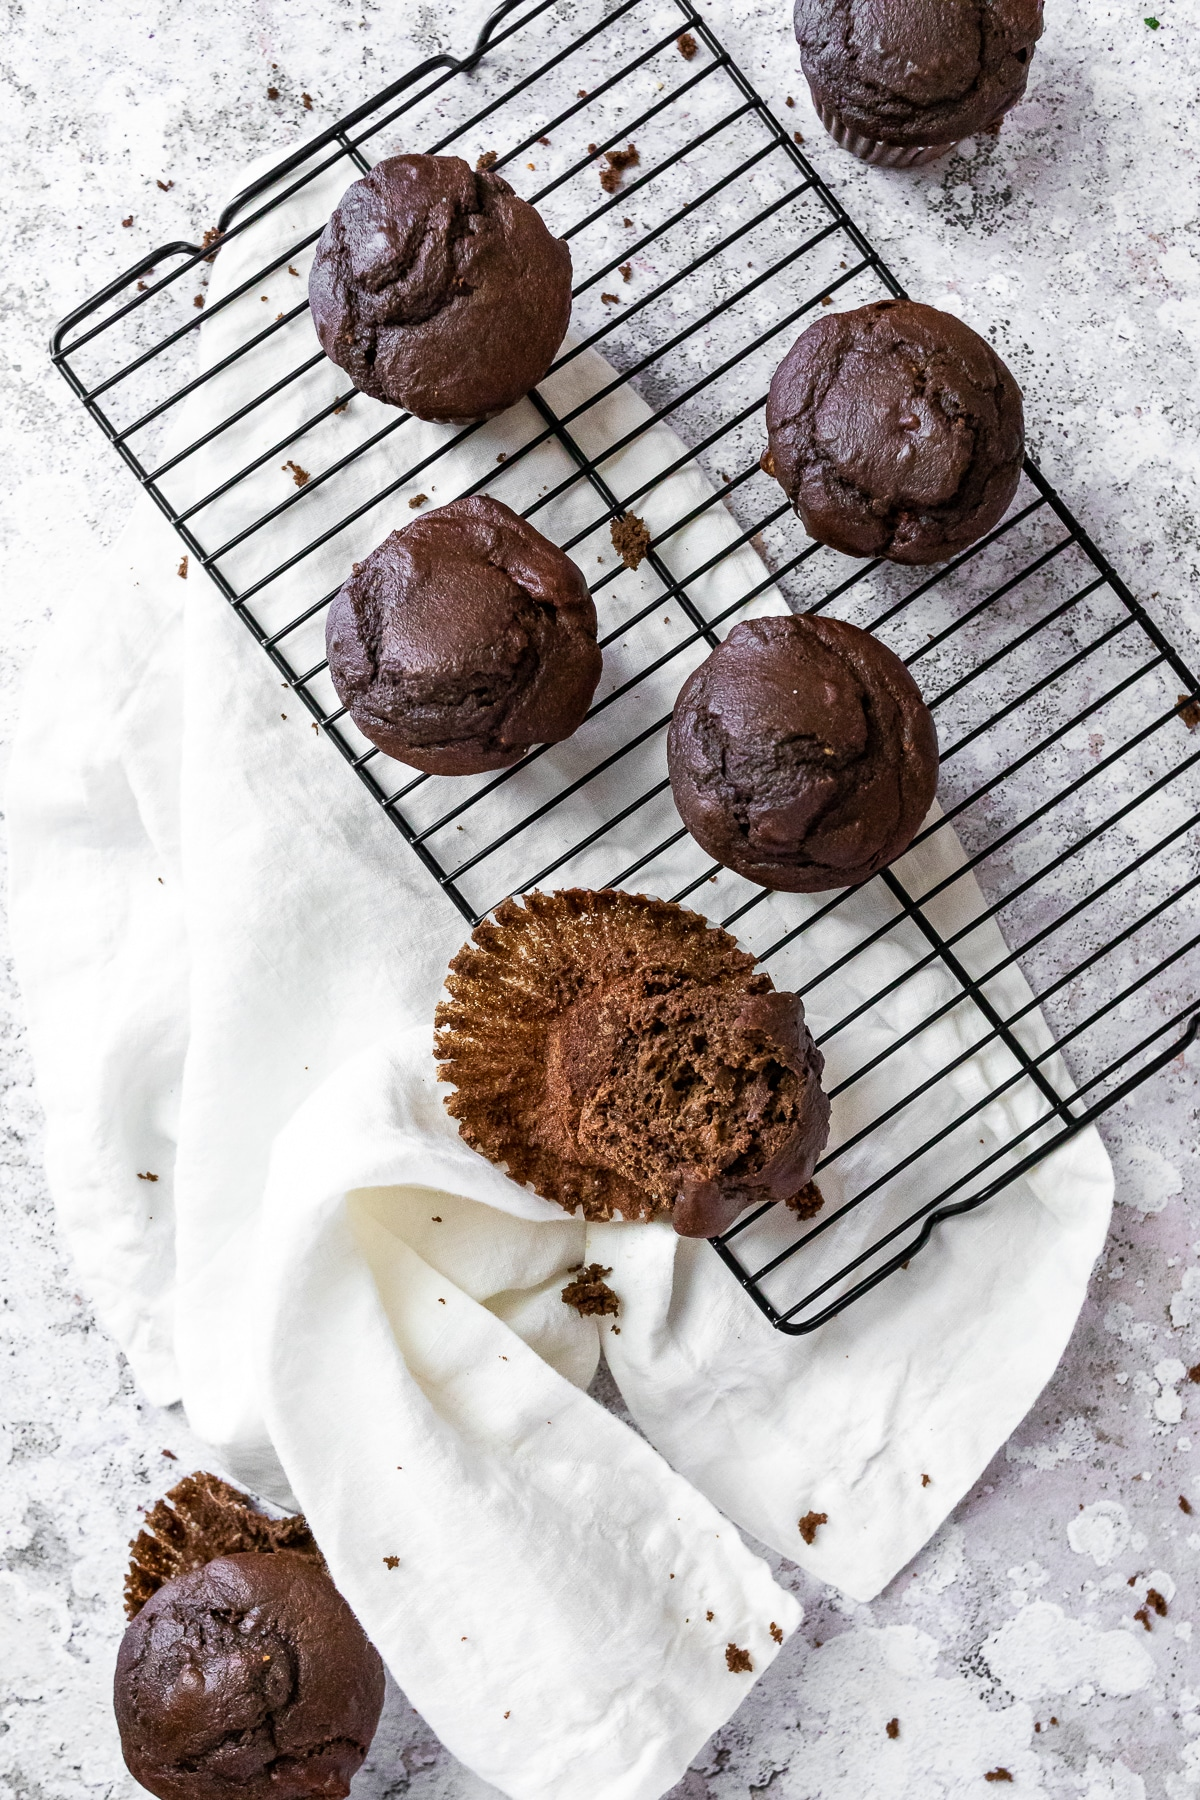 Bird view of 7 chocolate muffins on a wire rack with a cloth on the side.